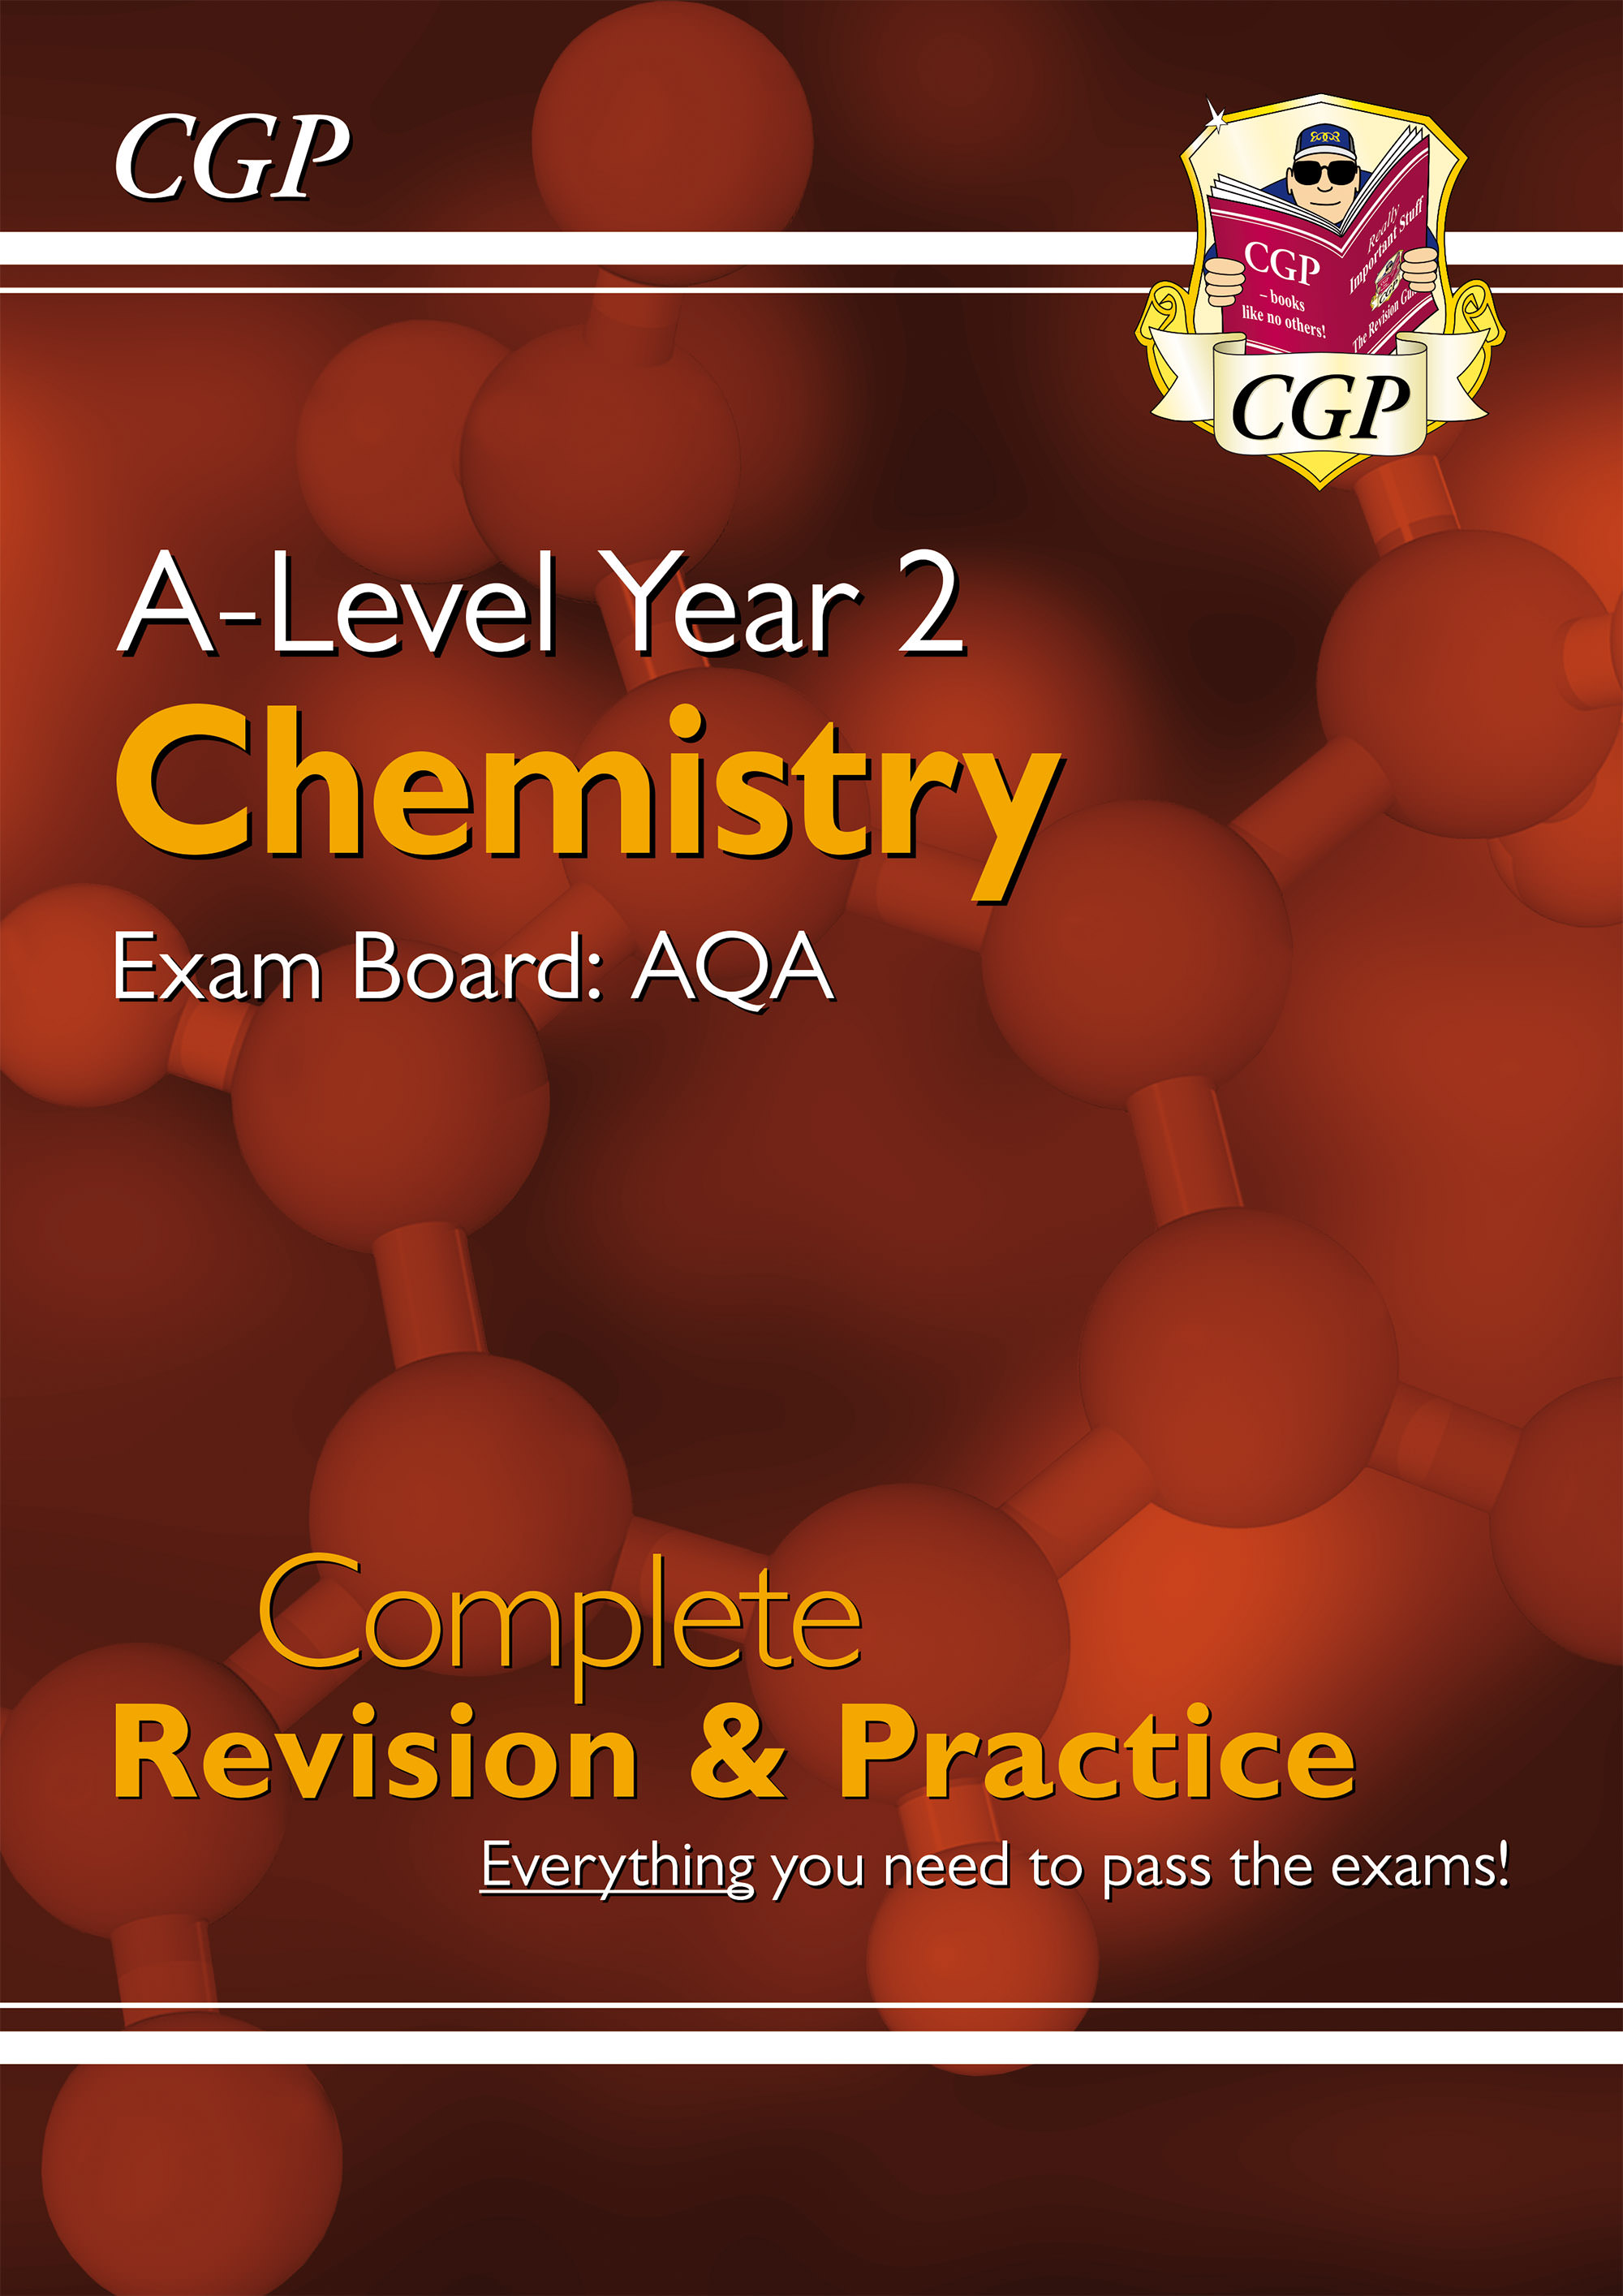 CAR63DK - New A-Level Chemistry: AQA Year 2 Complete Revision & Practice